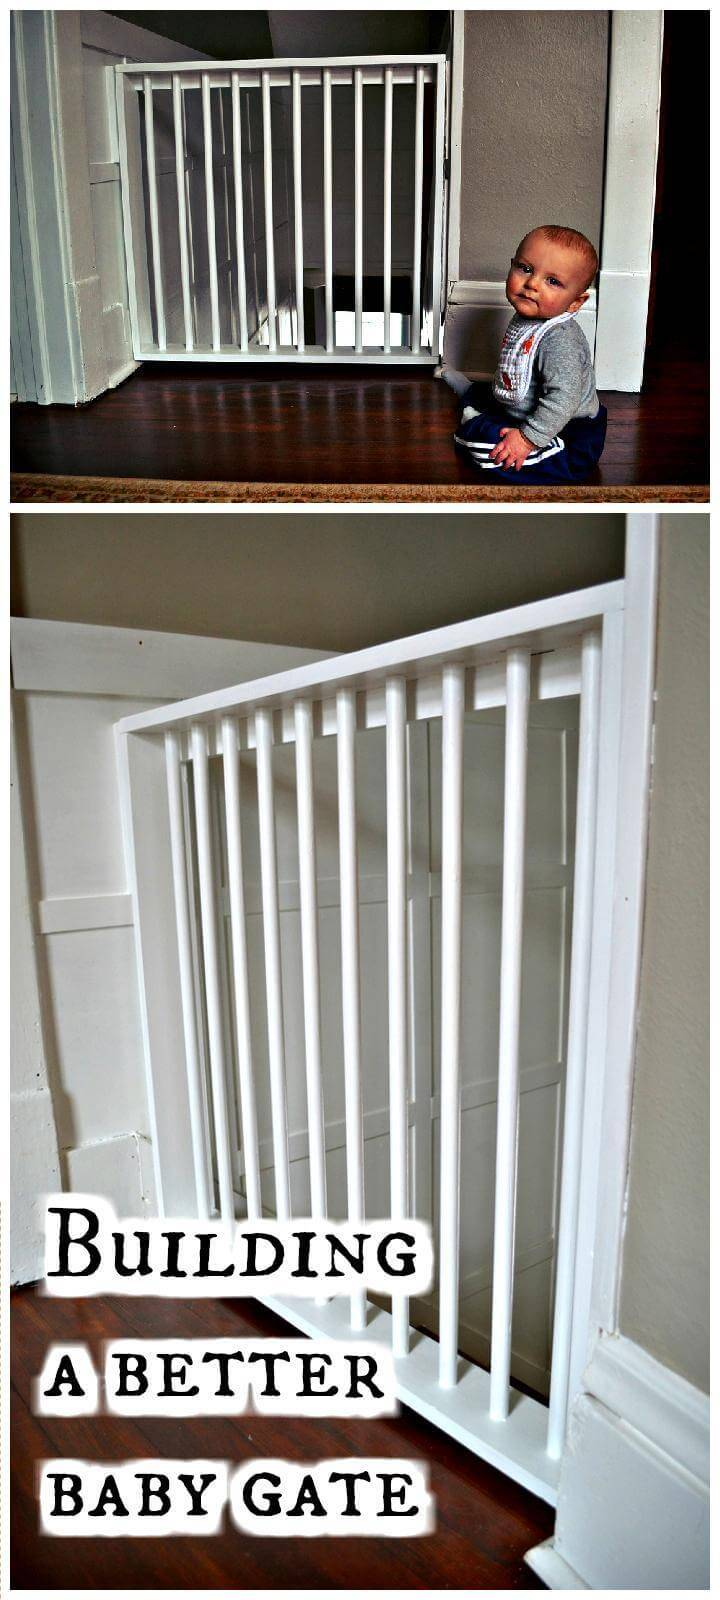 DIY tutorial about building a better baby gate